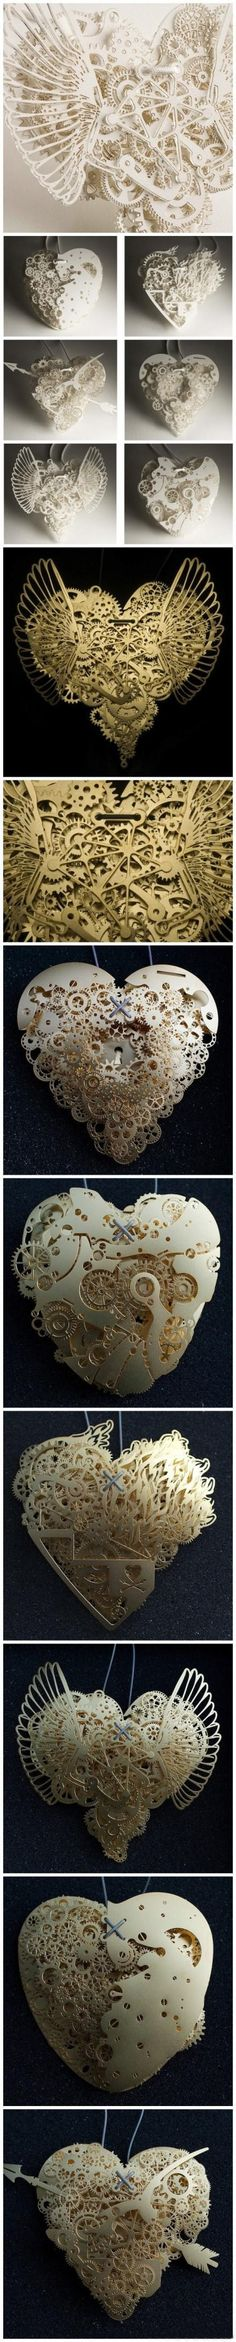 Mechanical heart paper sculptures make our 'foldy' business cards look amateur.